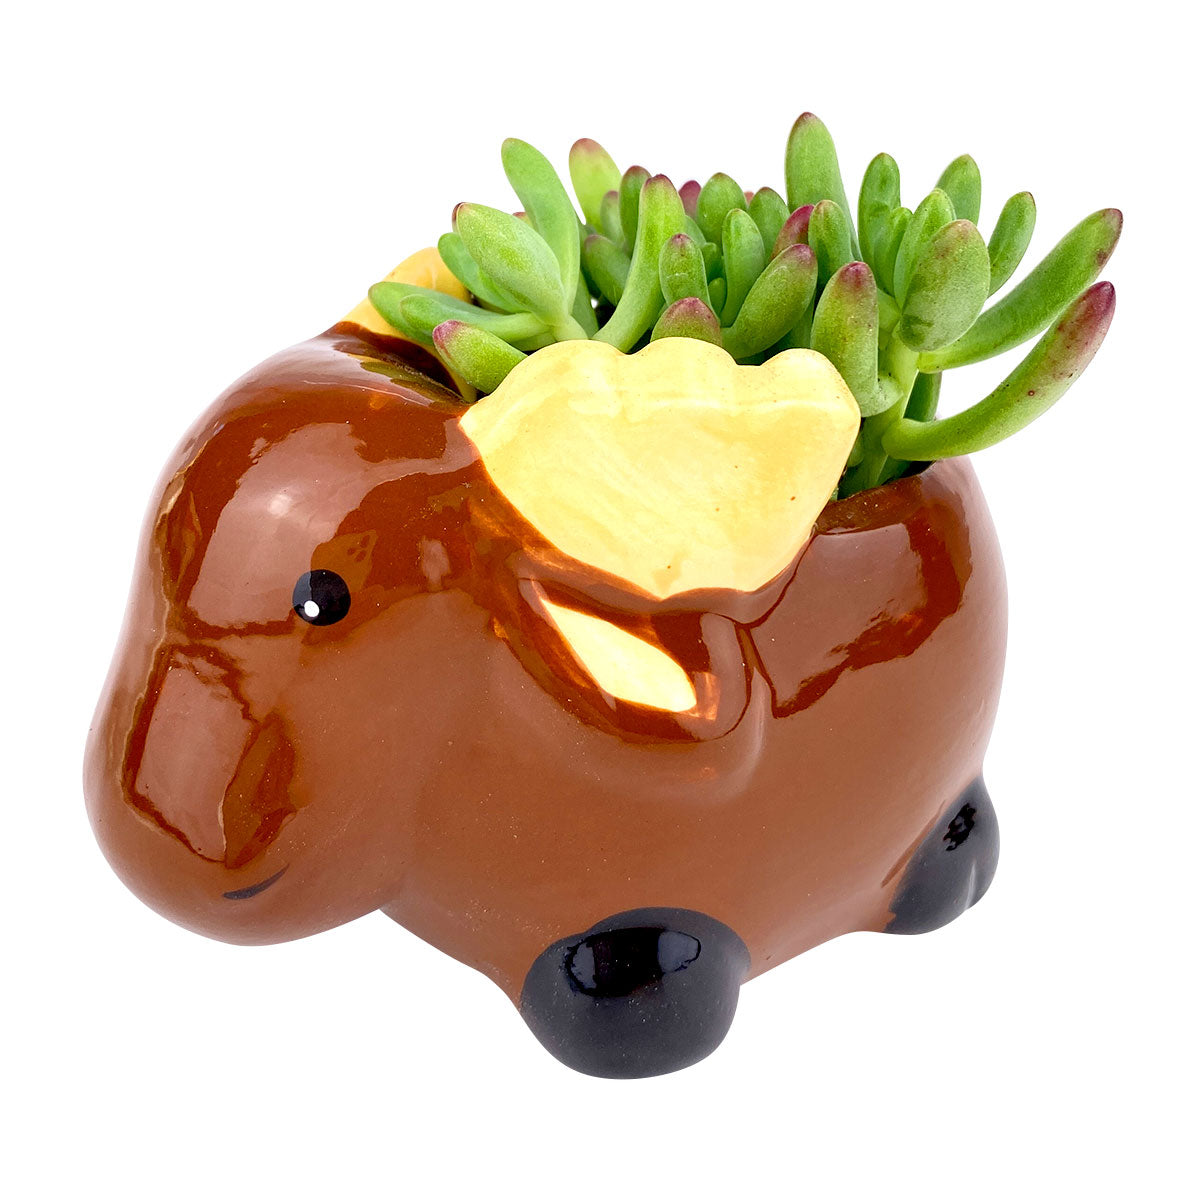 Ceramic Moose Pot for sale, Cute Ceramic Succulent Pot, Moose Planter Decor, Craft Supplies, Succulent Gift Ideas, Moose Succulent Pot